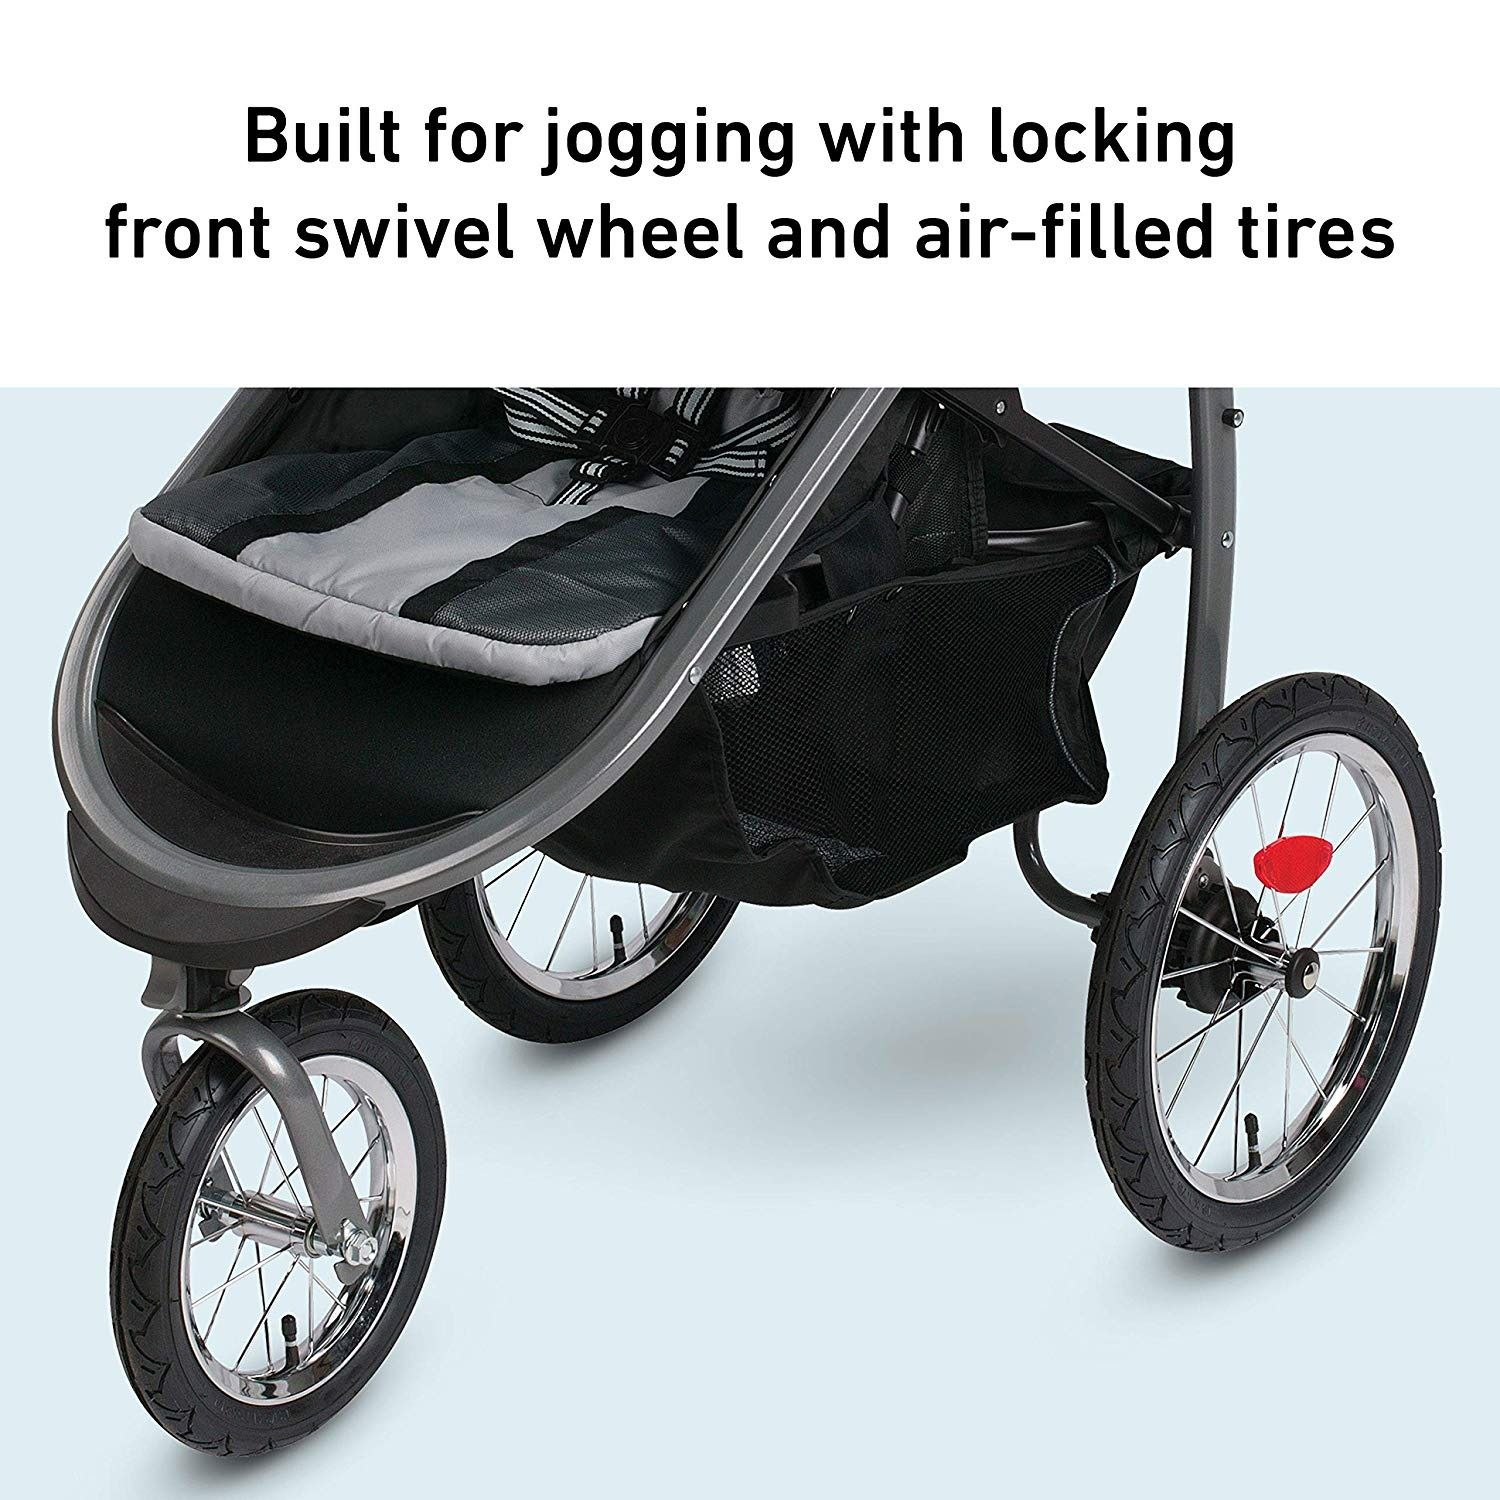 Details about Graco Roadmaster Travel System + Snugride